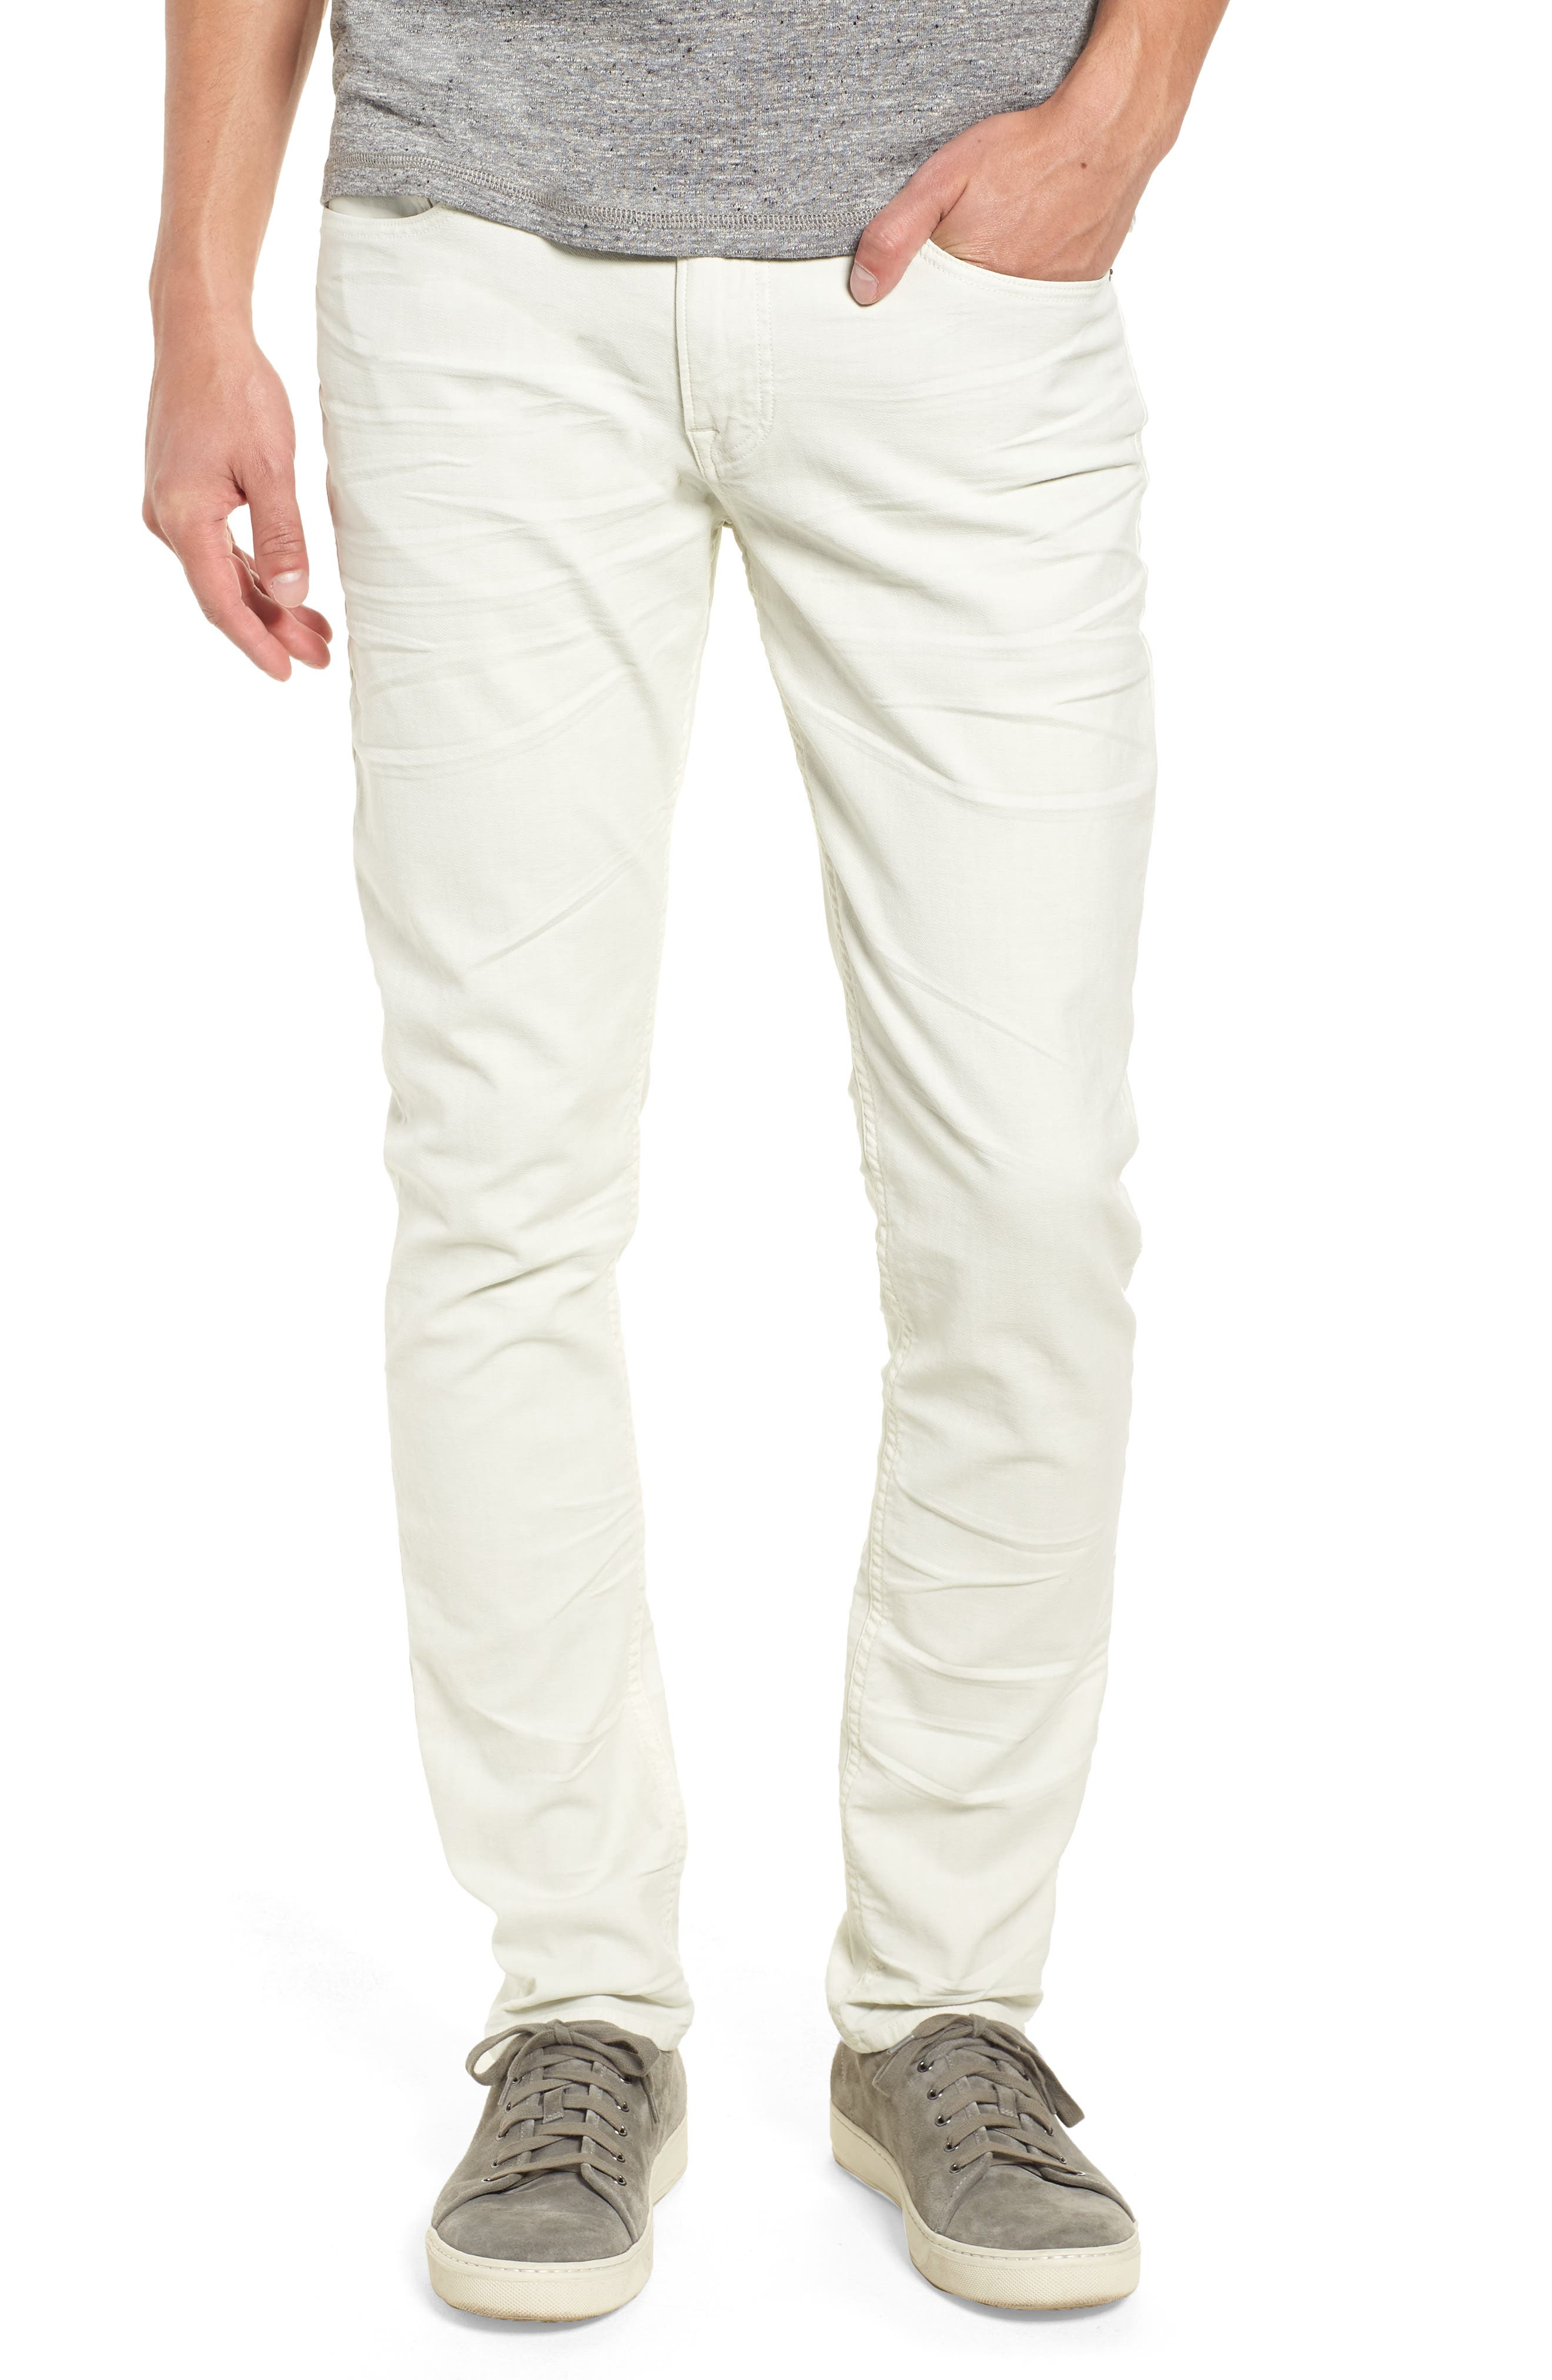 HUDSON JEANS, Axl Skinny Fit Jeans, Main thumbnail 1, color, DIRTY WHITE